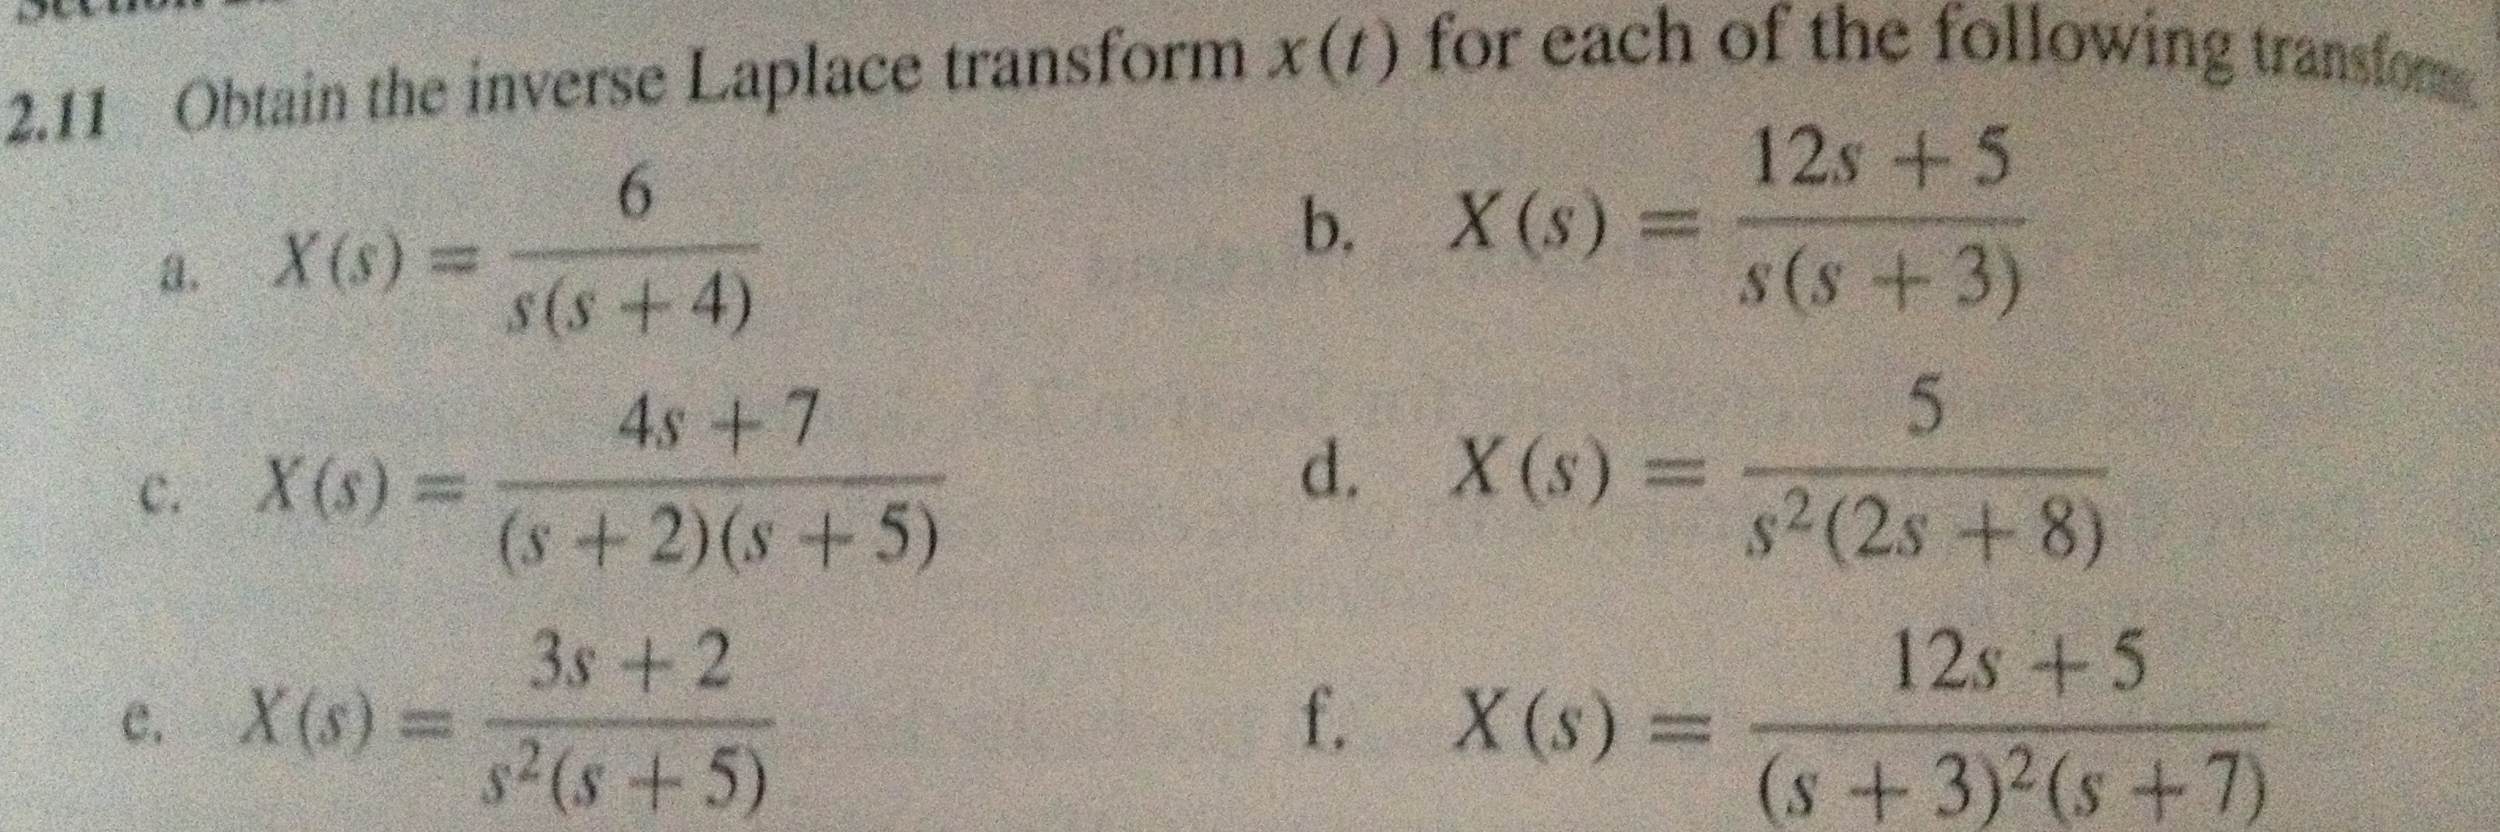 Obtain the inverse laplace transform x(t) for eac